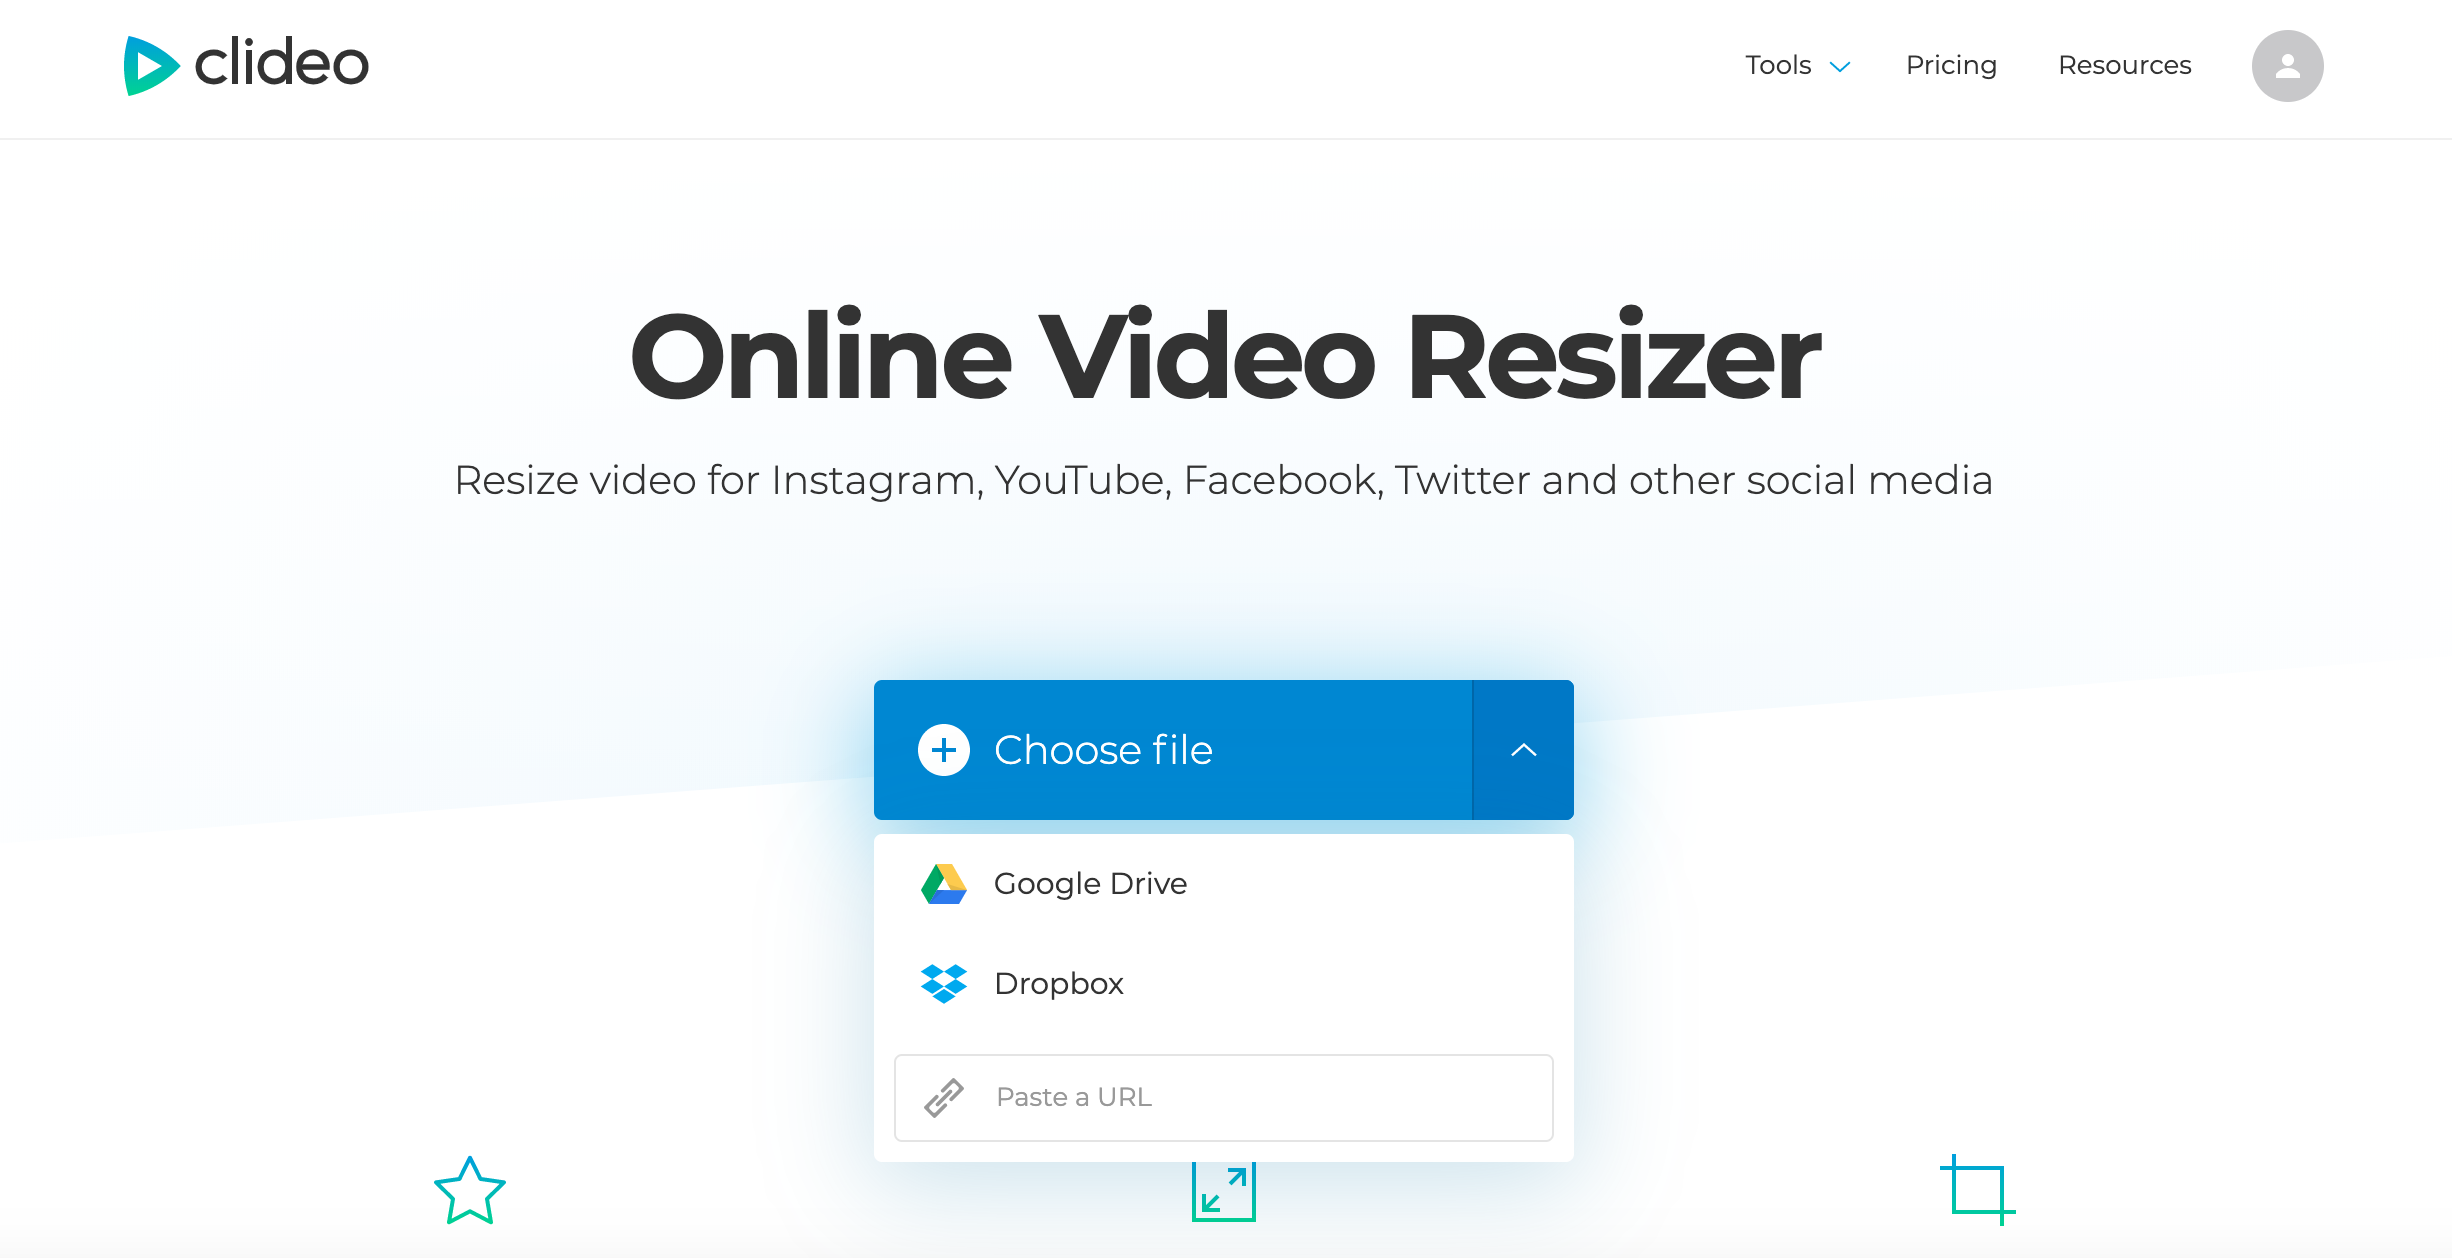 Upload a video you want to resize